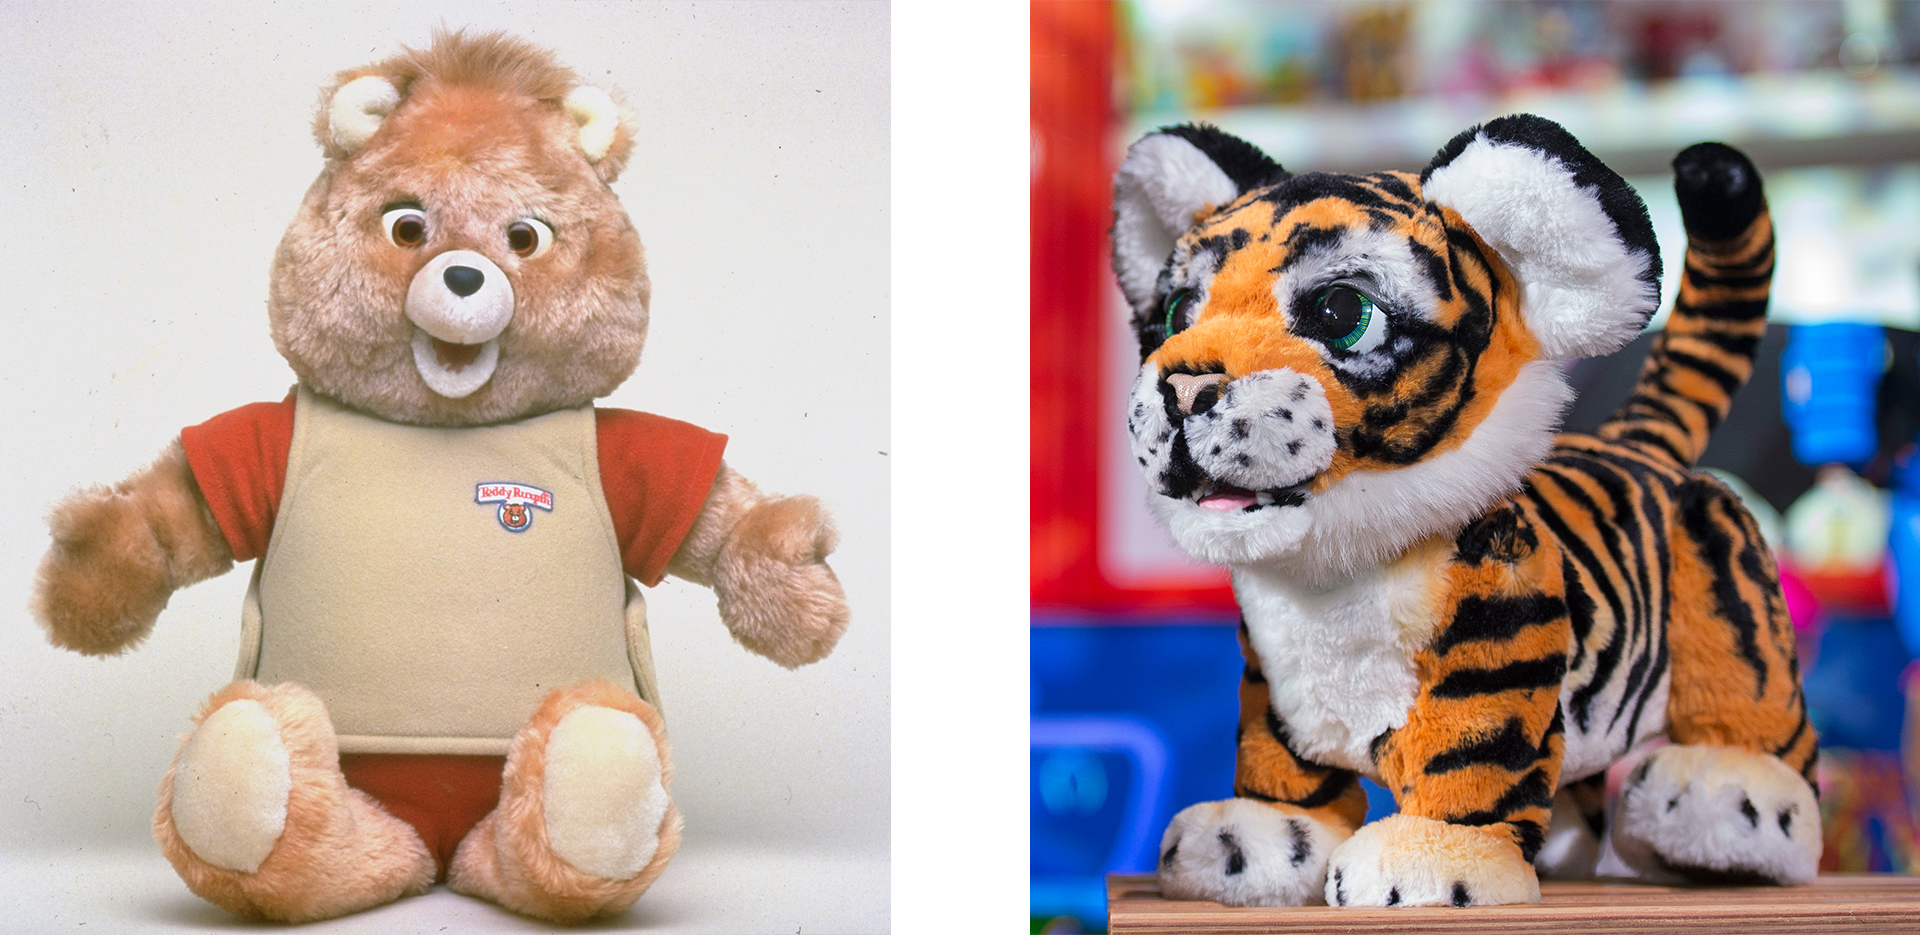 Teddy Ruxpin (Credit: James Keyser/The LIFE Images Collection/Getty Images) and Roarin' Tyler (Credit: Victoria Jones/PA Images via Getty Images)